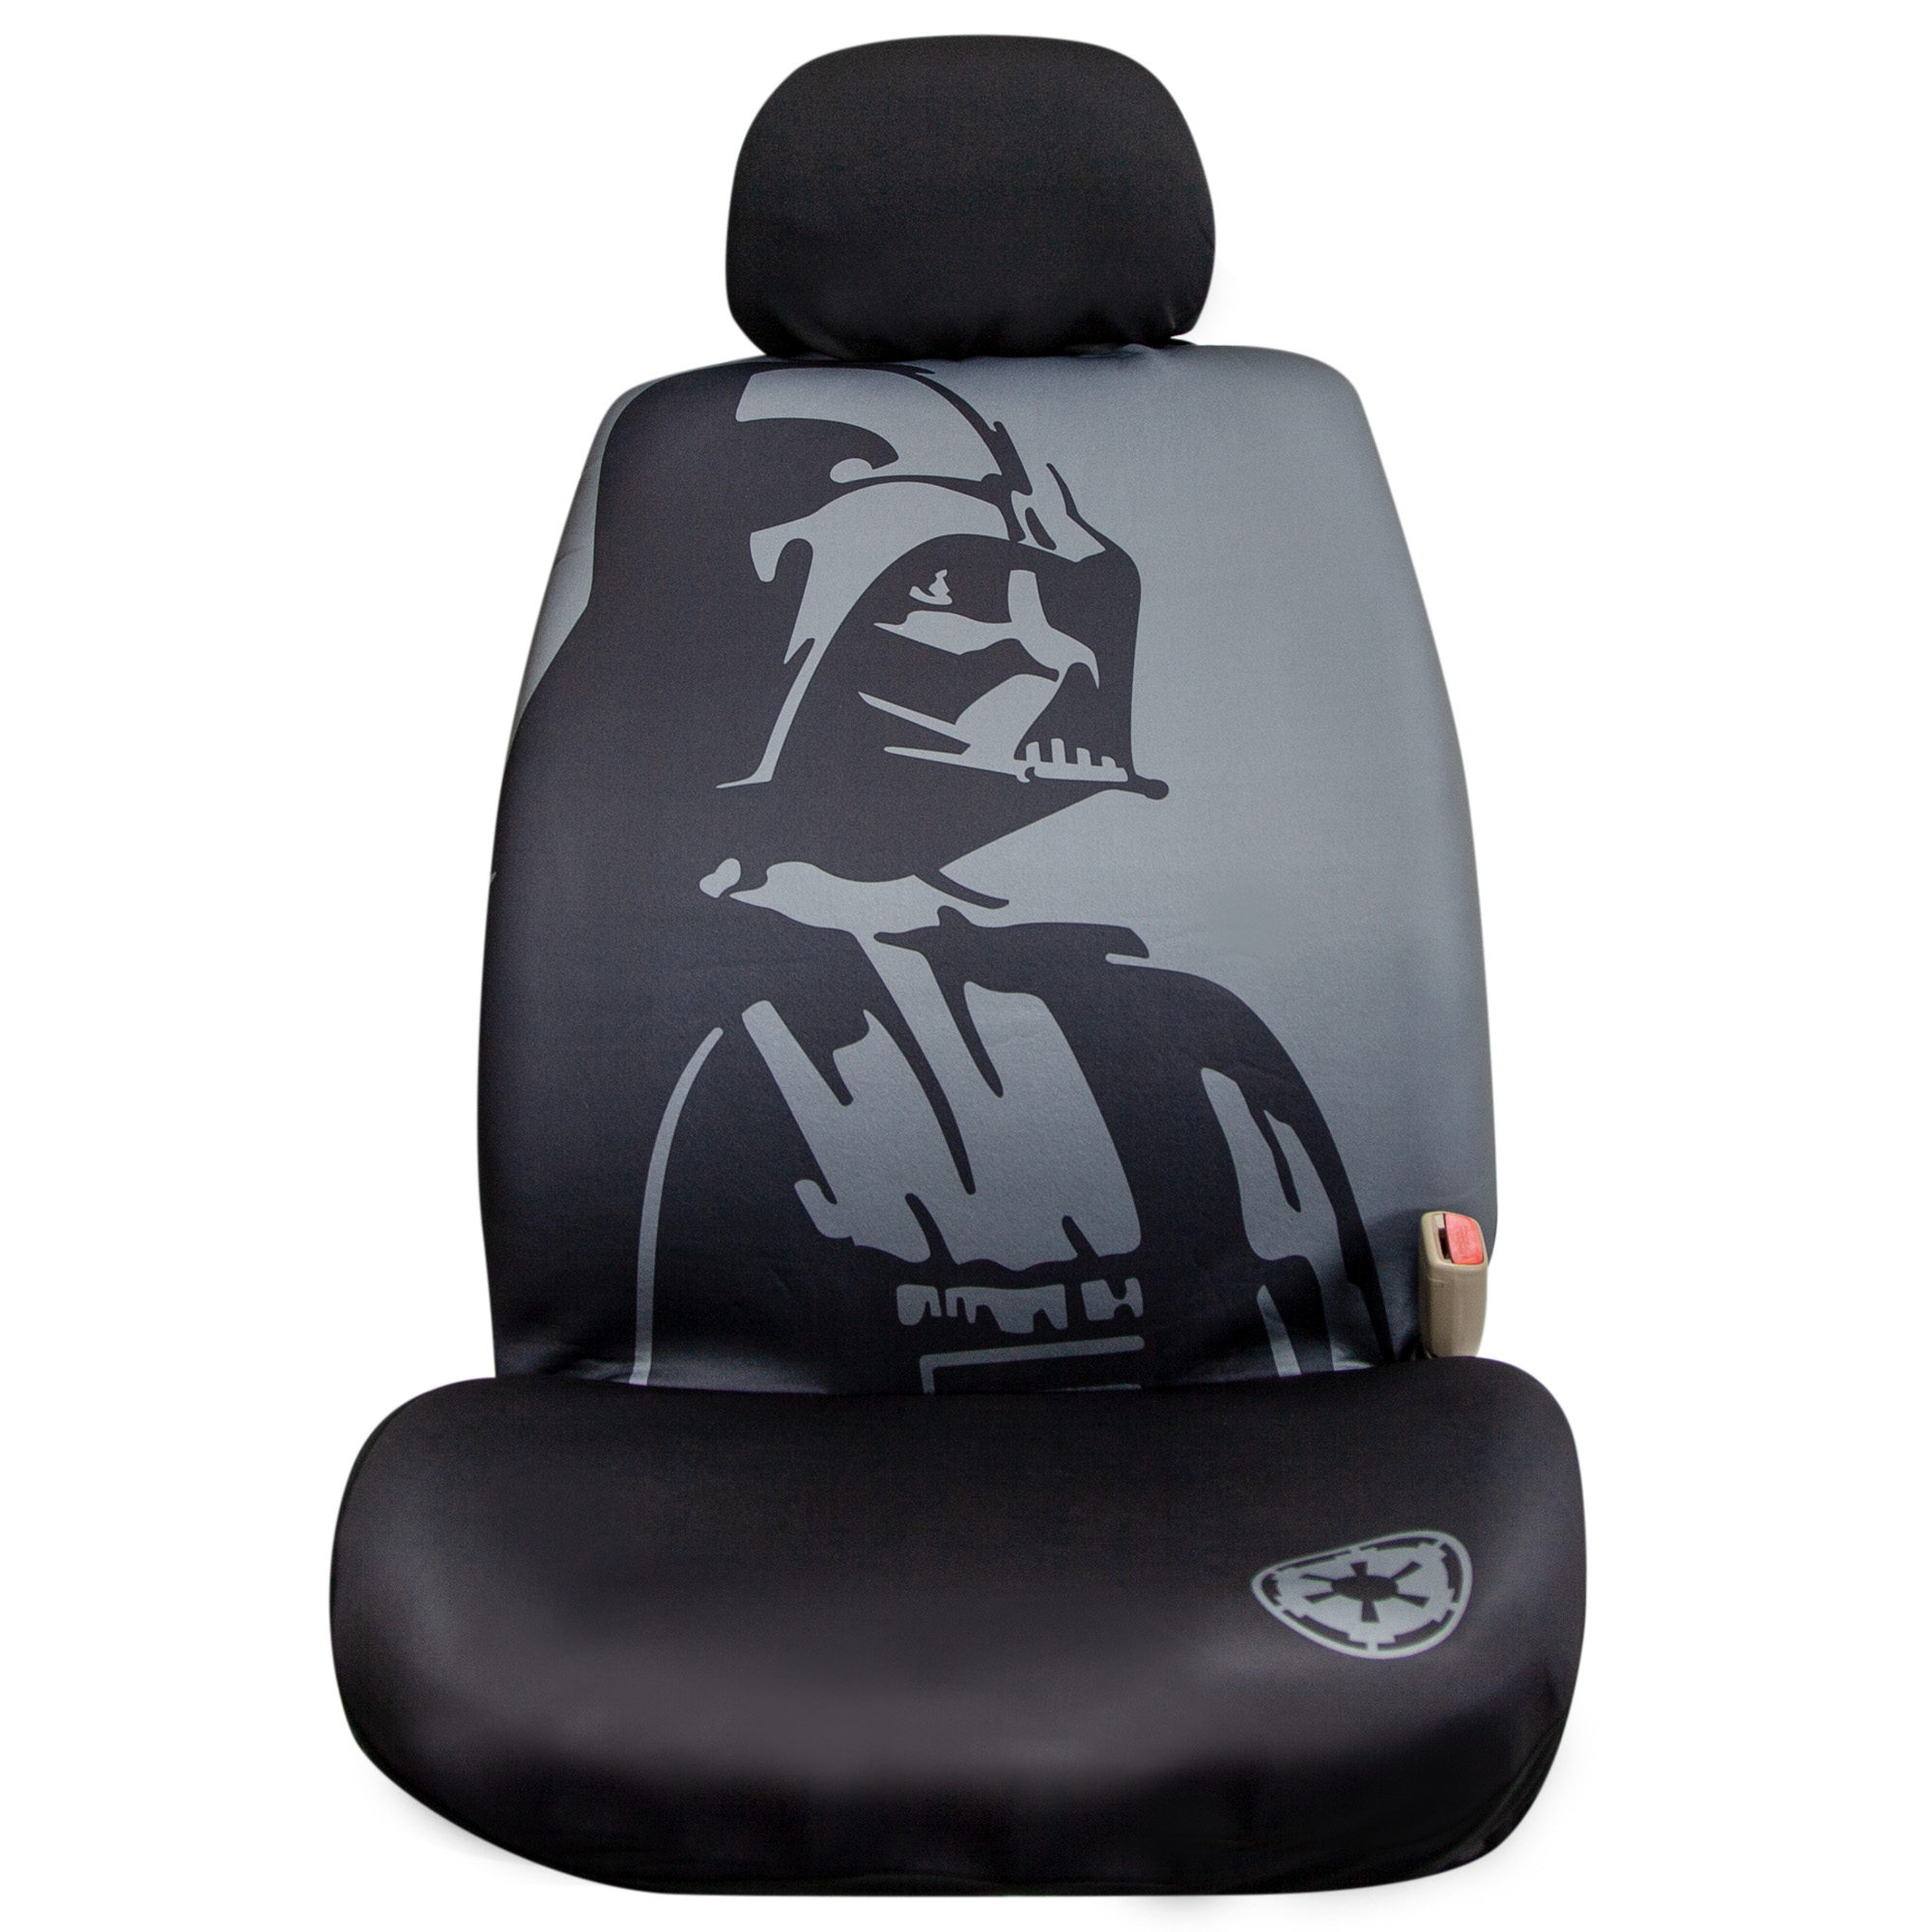 Star Wars™ Darth Vader Low Back Seat Cover with Headrest Cover